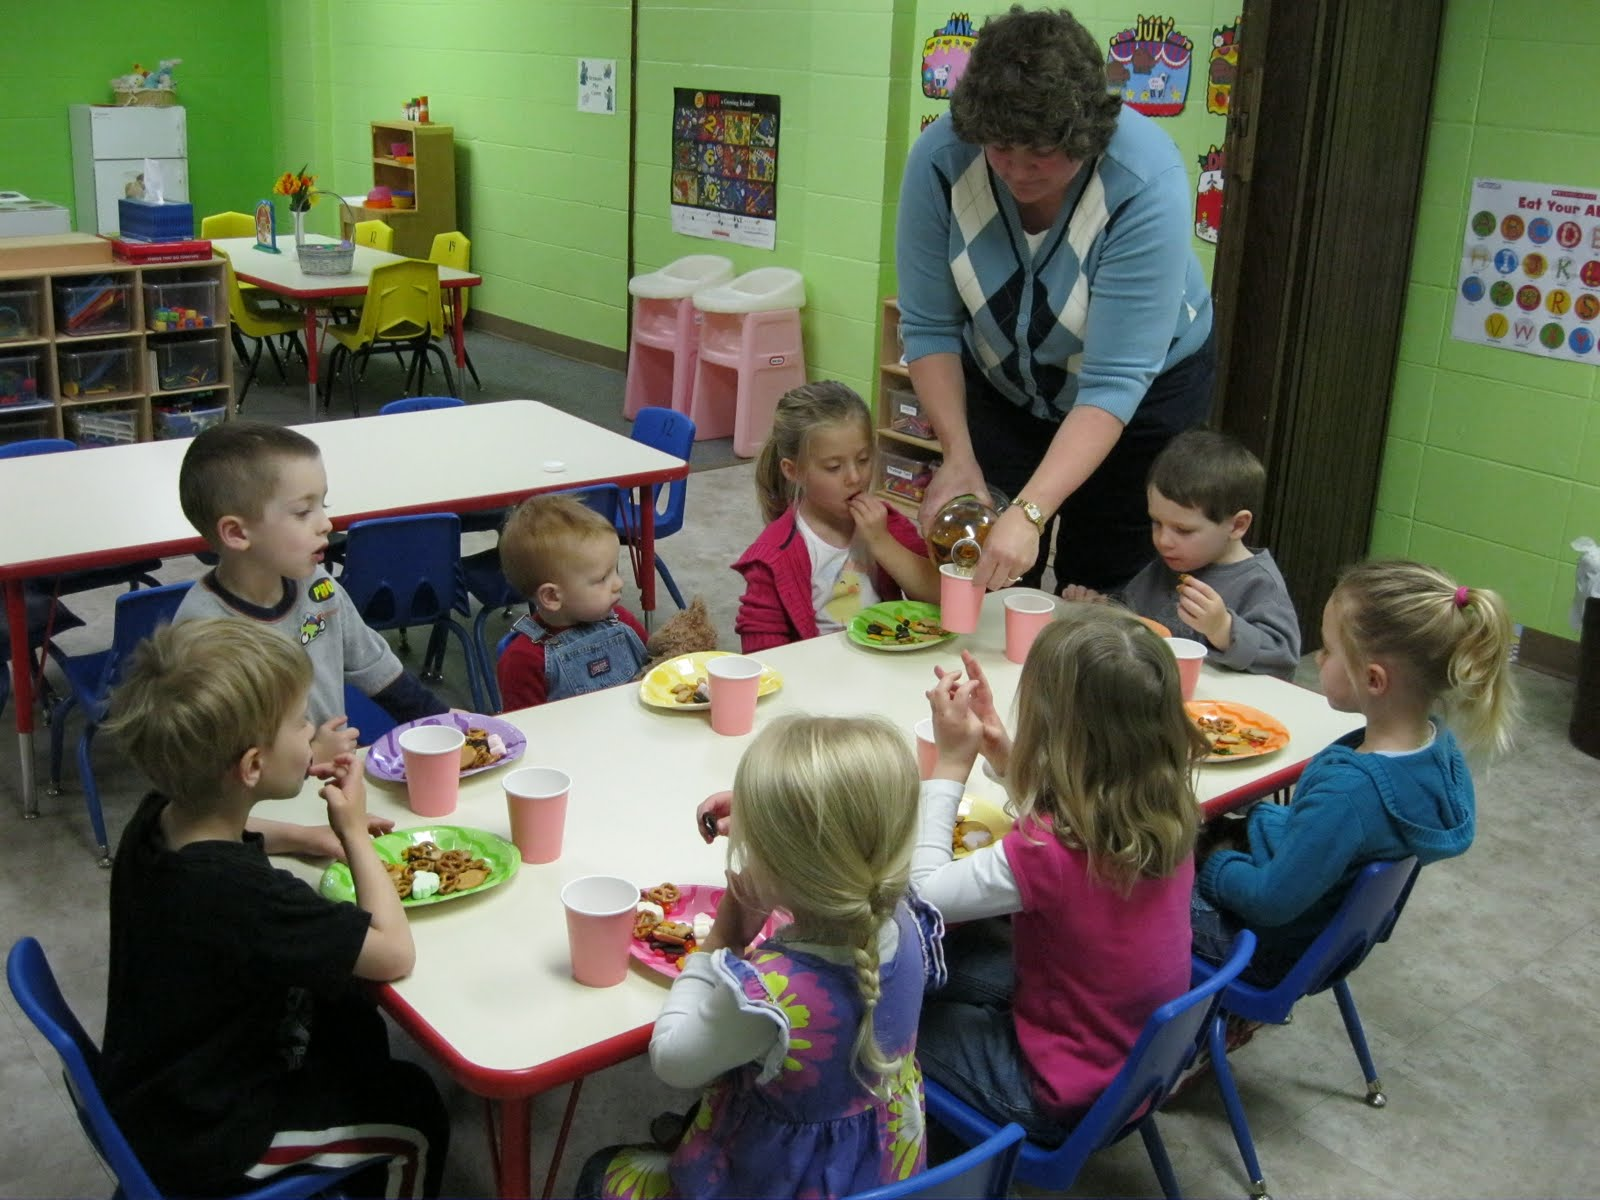 Displaying 19 Images For Kids Eating Lunch At Preschool